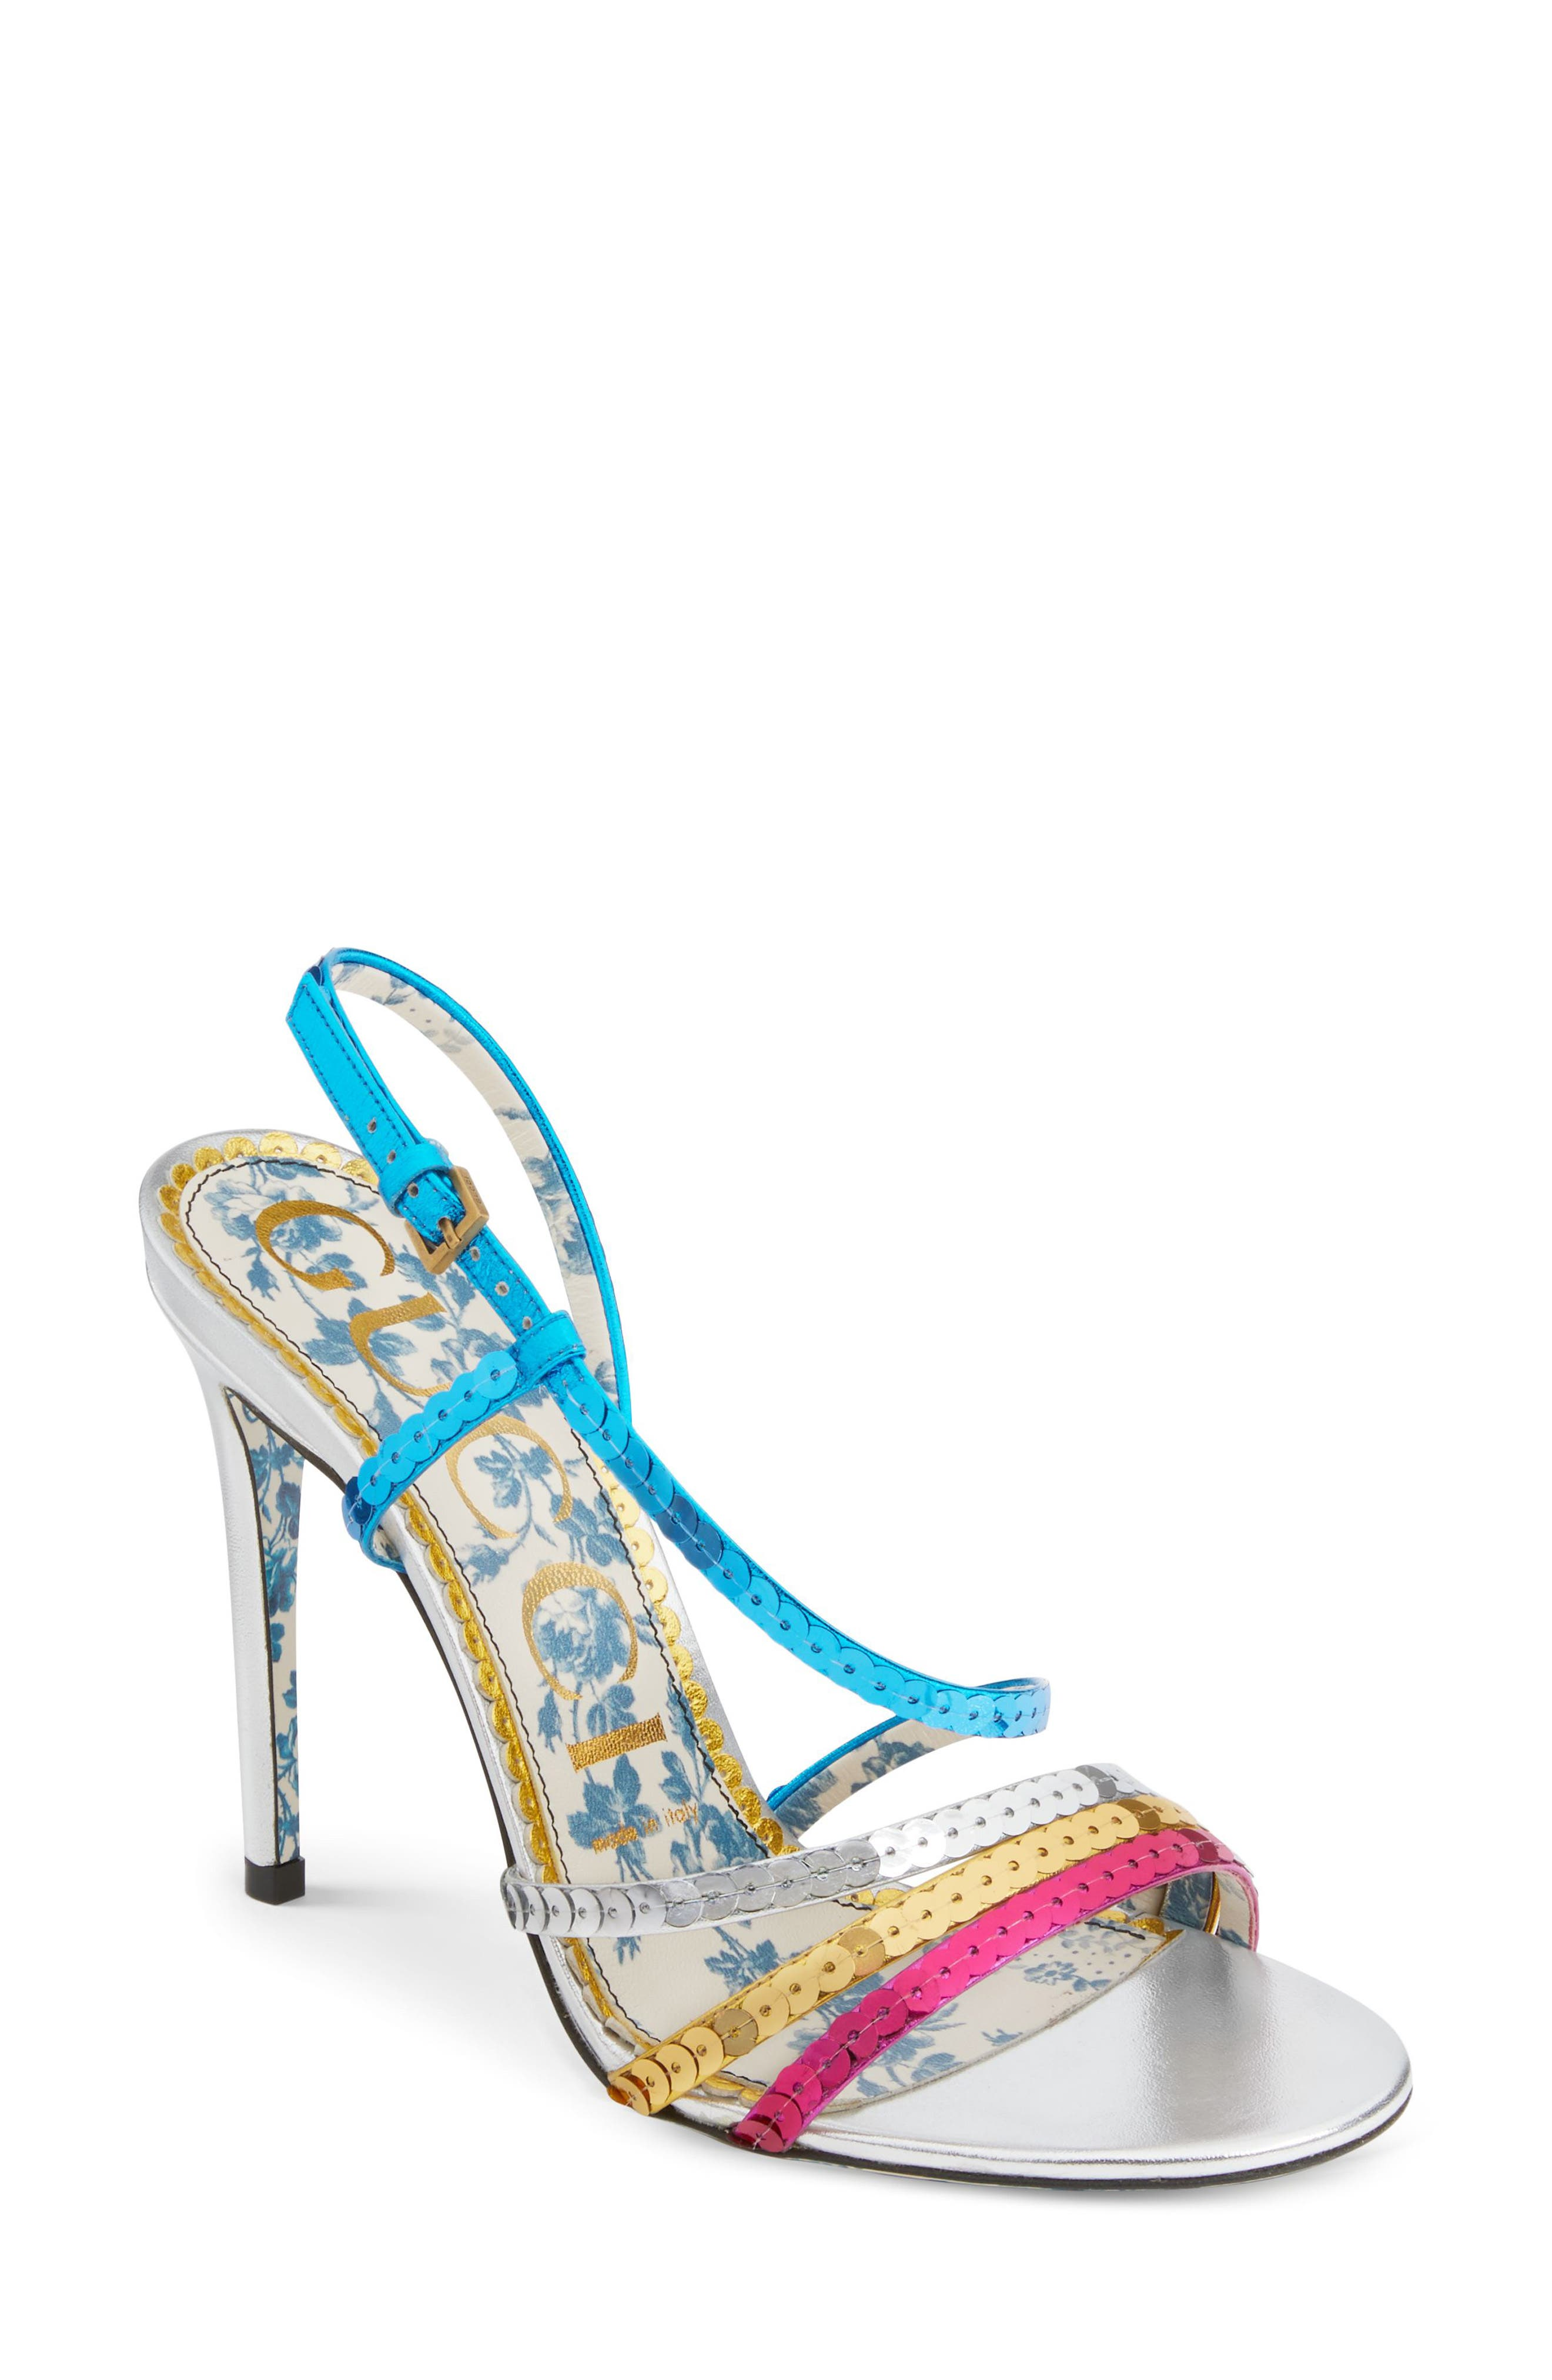 Alternate Image 1 Selected - Gucci Haines Sequin Sandal (Women)